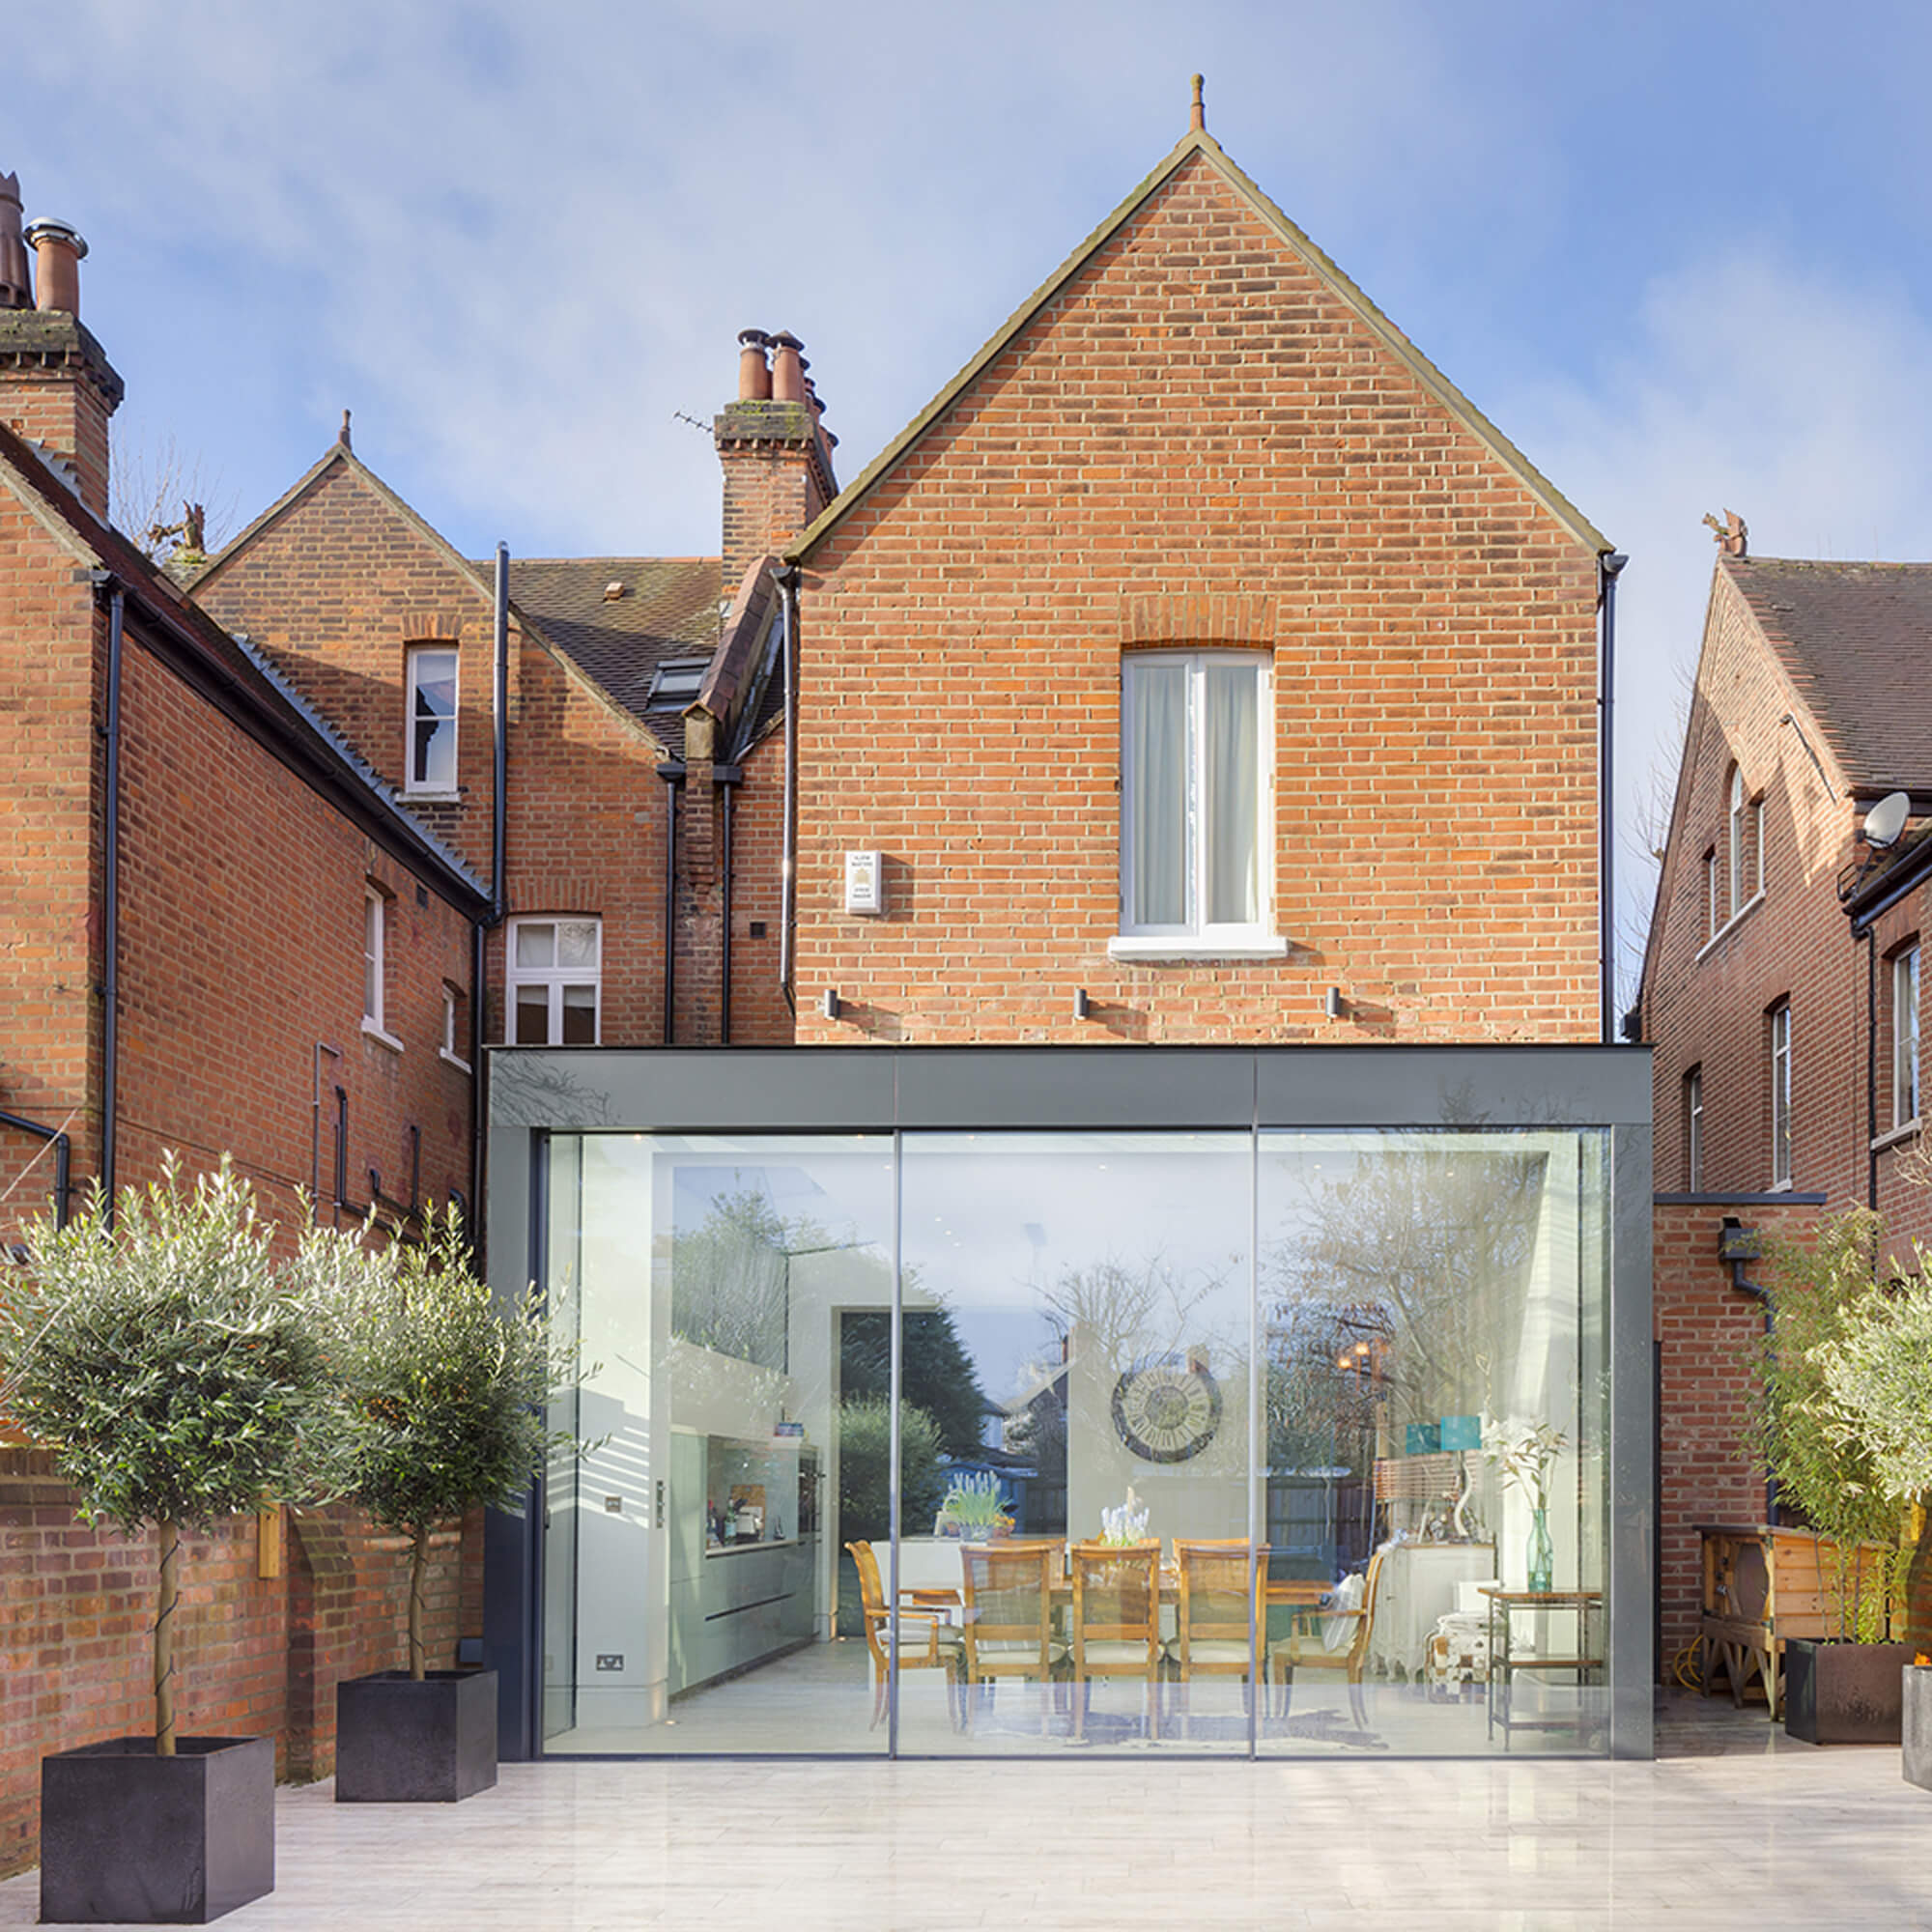 Marguerite Murdoch Architects - Based in Teddington, Richmond Upon Thames - Complex Glass Extension High Quality